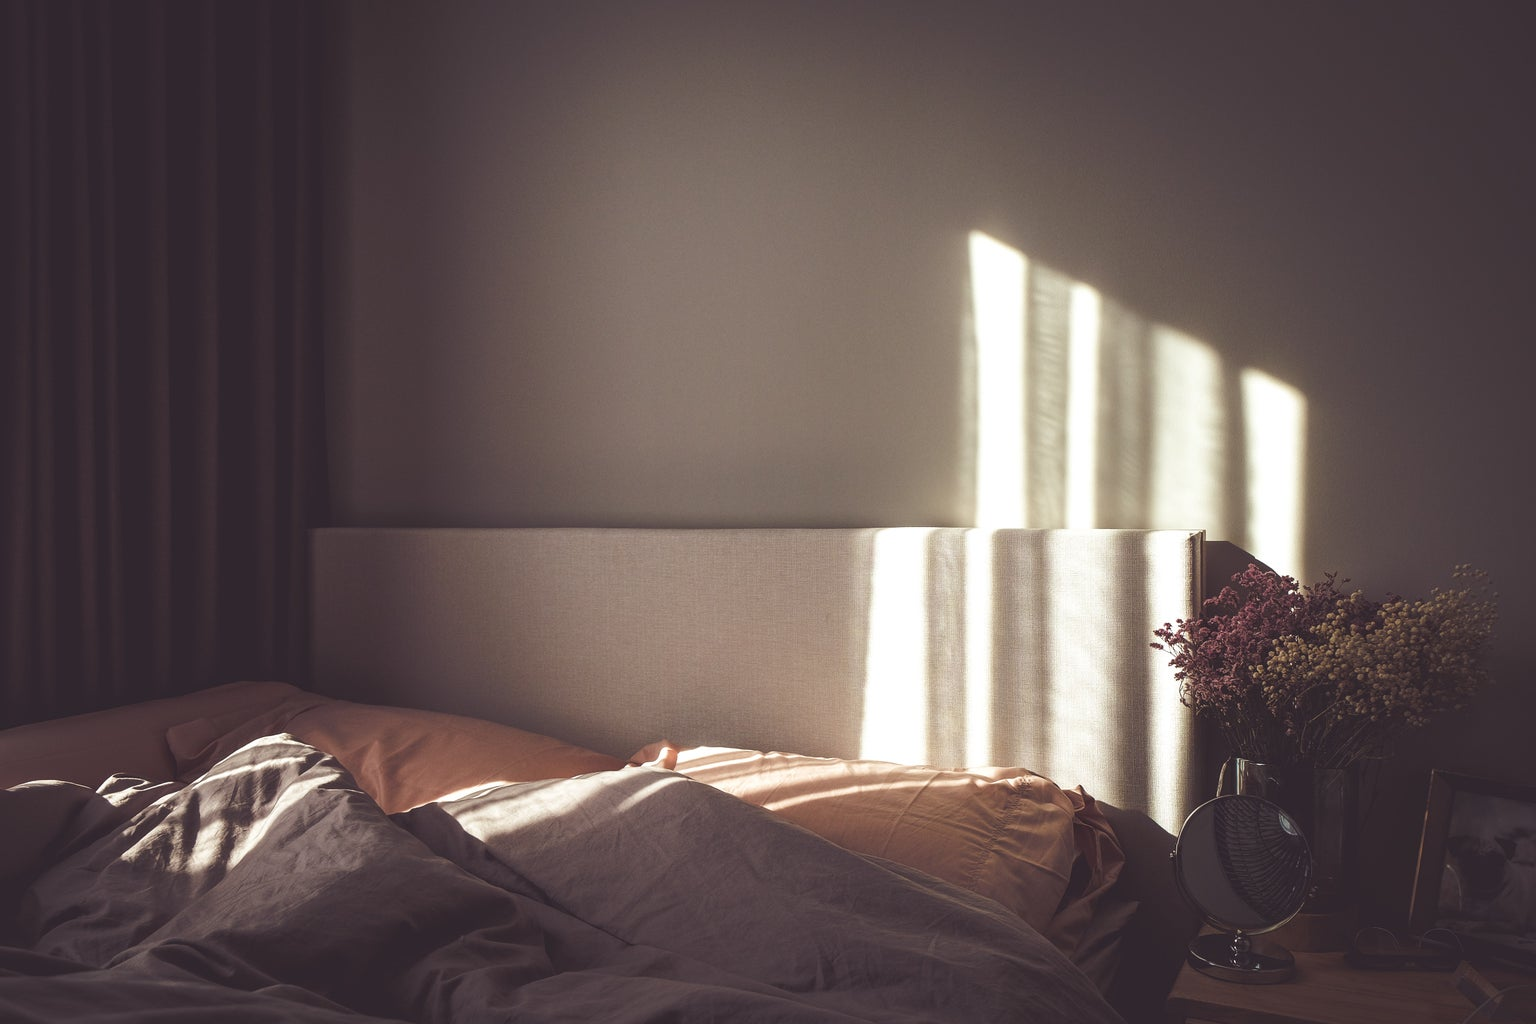 empty bed with sunlight on wall